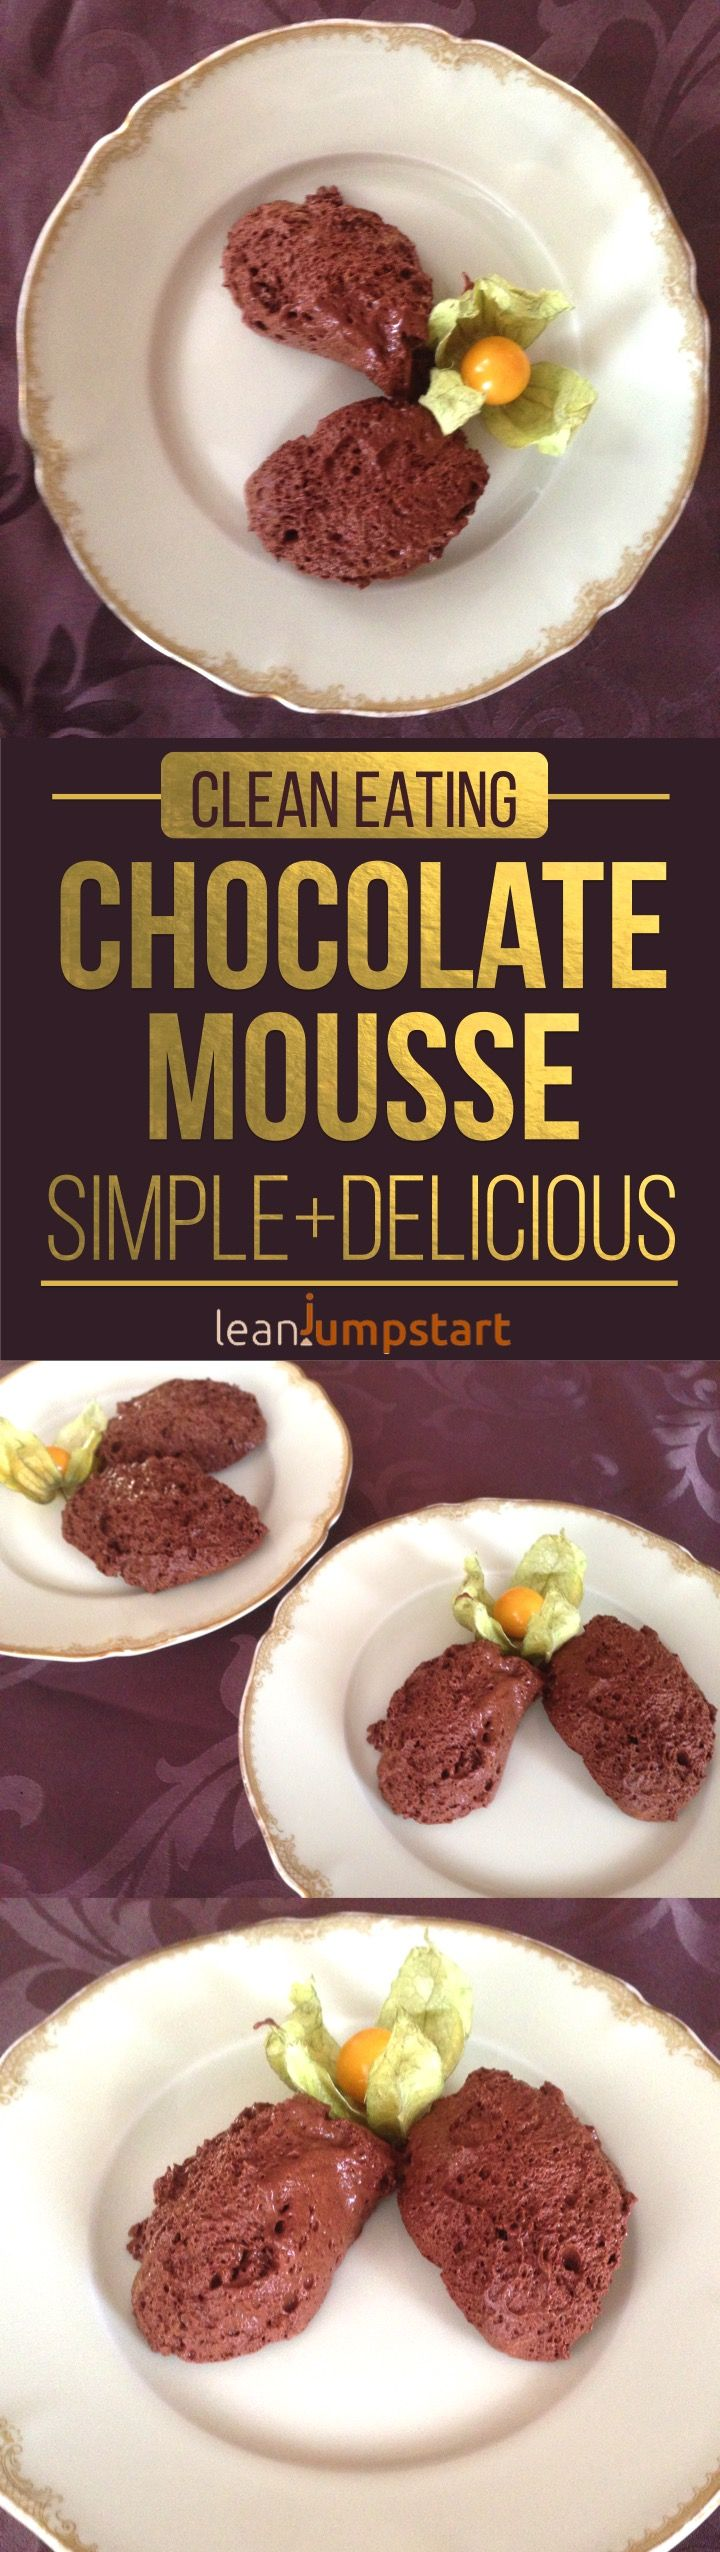 easy chocolate mousse recipe with just 2 ingredients - addictive, clean and lean #chocolatemousse #eatclean #aquafaba via @leanjumpstart